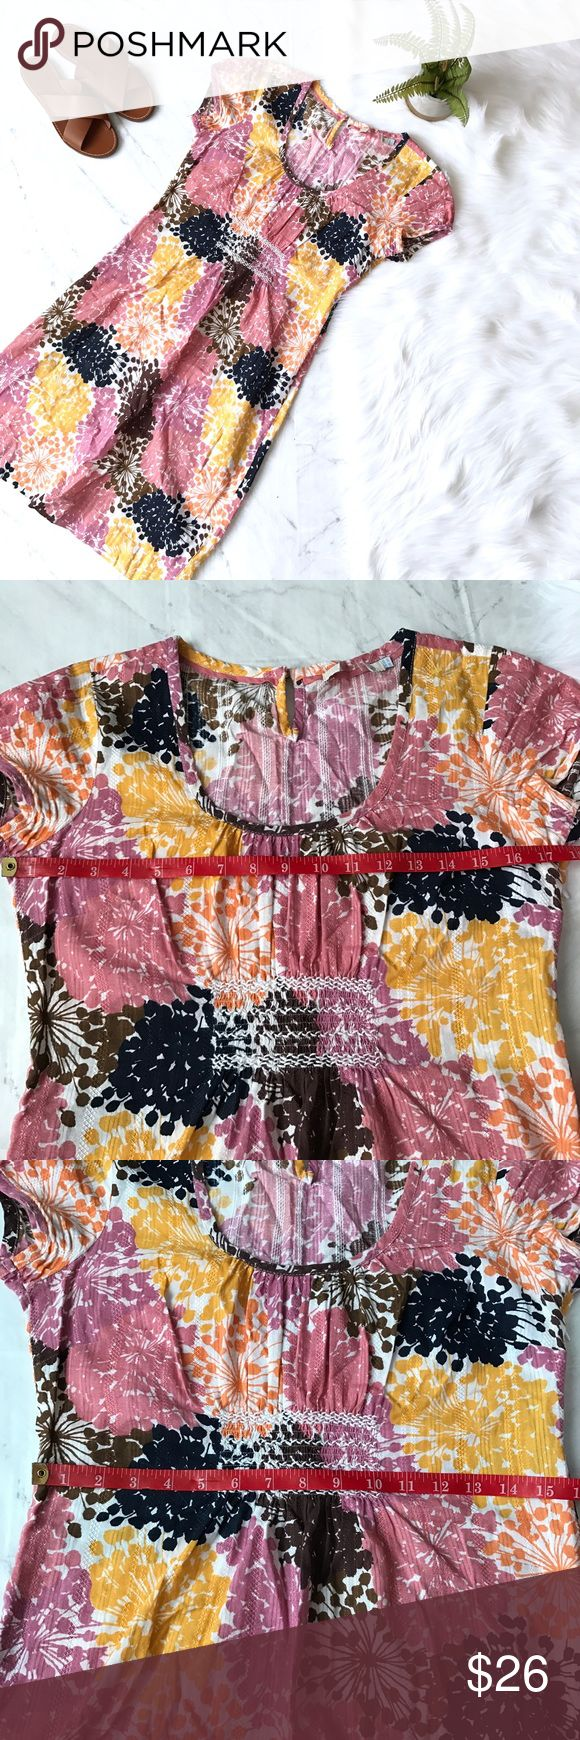 Boden dress sz 6 Casual printed Boden dress. Great condition. Middle of tag was cut out as pictured. Sz 6. Boden Dresses